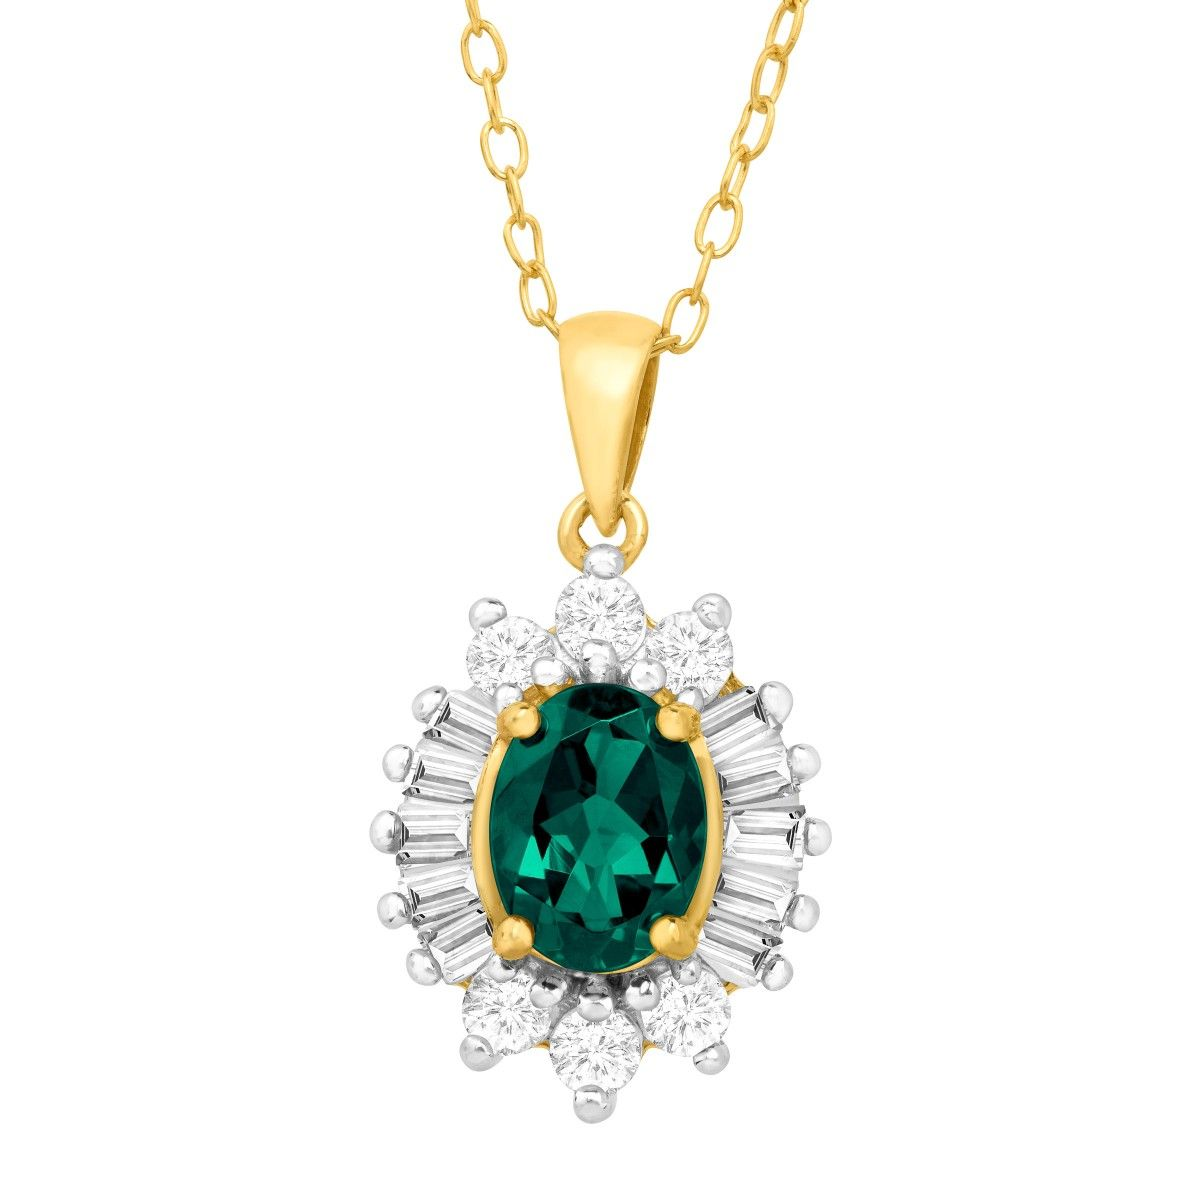 3/17/16 - 2 1/8 ct Emerald & White Sapphire Pendant in Sterling Silver